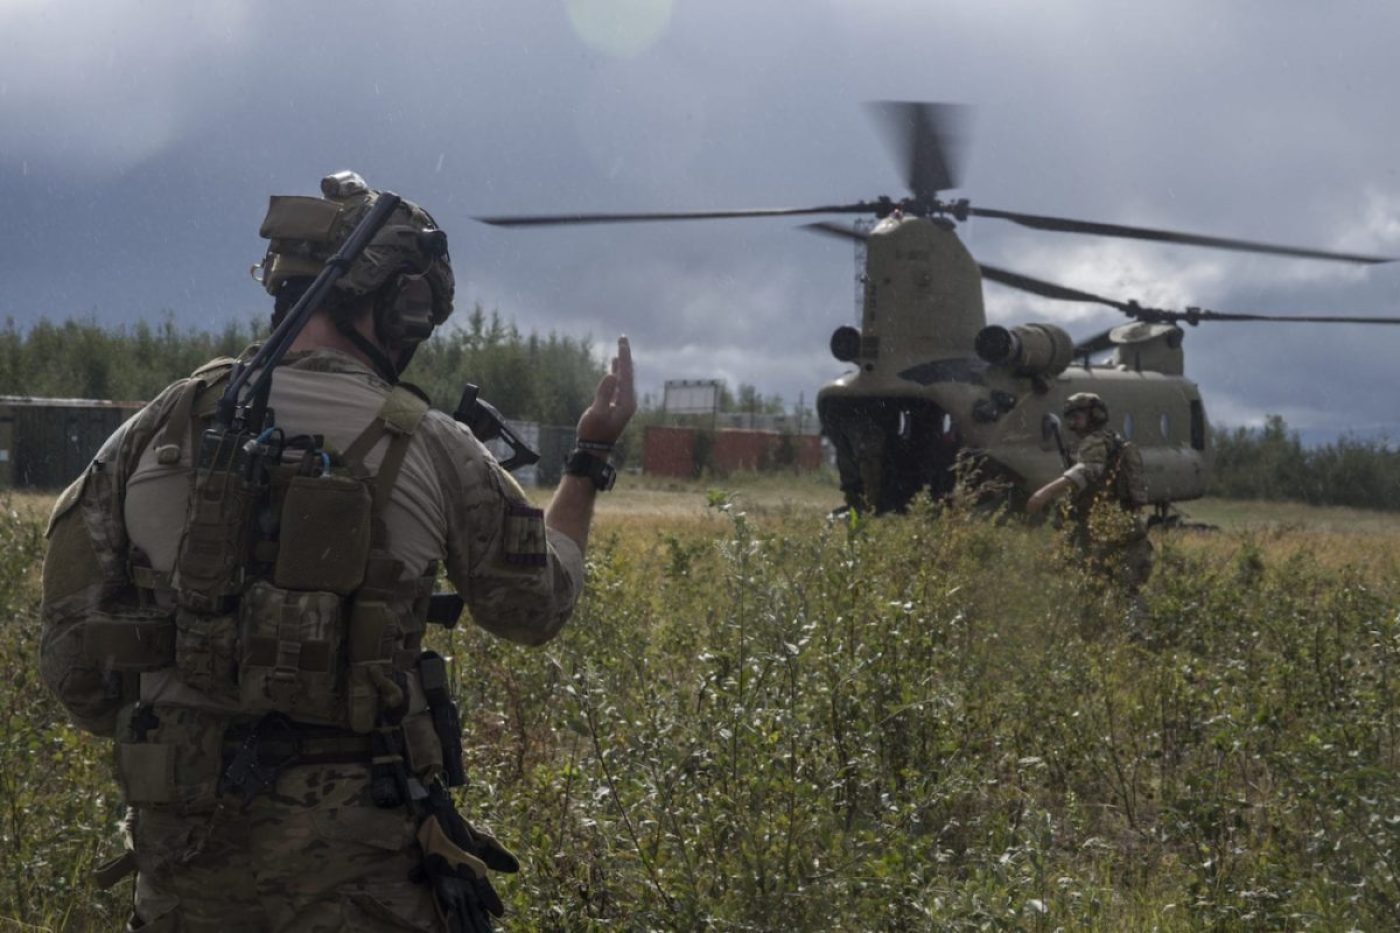 A Special Tactics Airman with the 17th Special Tactics Squadron watches as a U.S. Army CH-47 Chinook prepares to land during RED FLAG-Alaska 18-3 at Eielson Air Force Base, Alaska, Aug. 16, 2018. Special Tactics is U.S. Special Operation Command's tactical air and ground integration force, and the Air Force's special operations ground force, leading global access, precision strike, personnel recovery and battlefield surgery operations. (U.S. Air Force photo by Tech. Sgt. Sandra Welch)